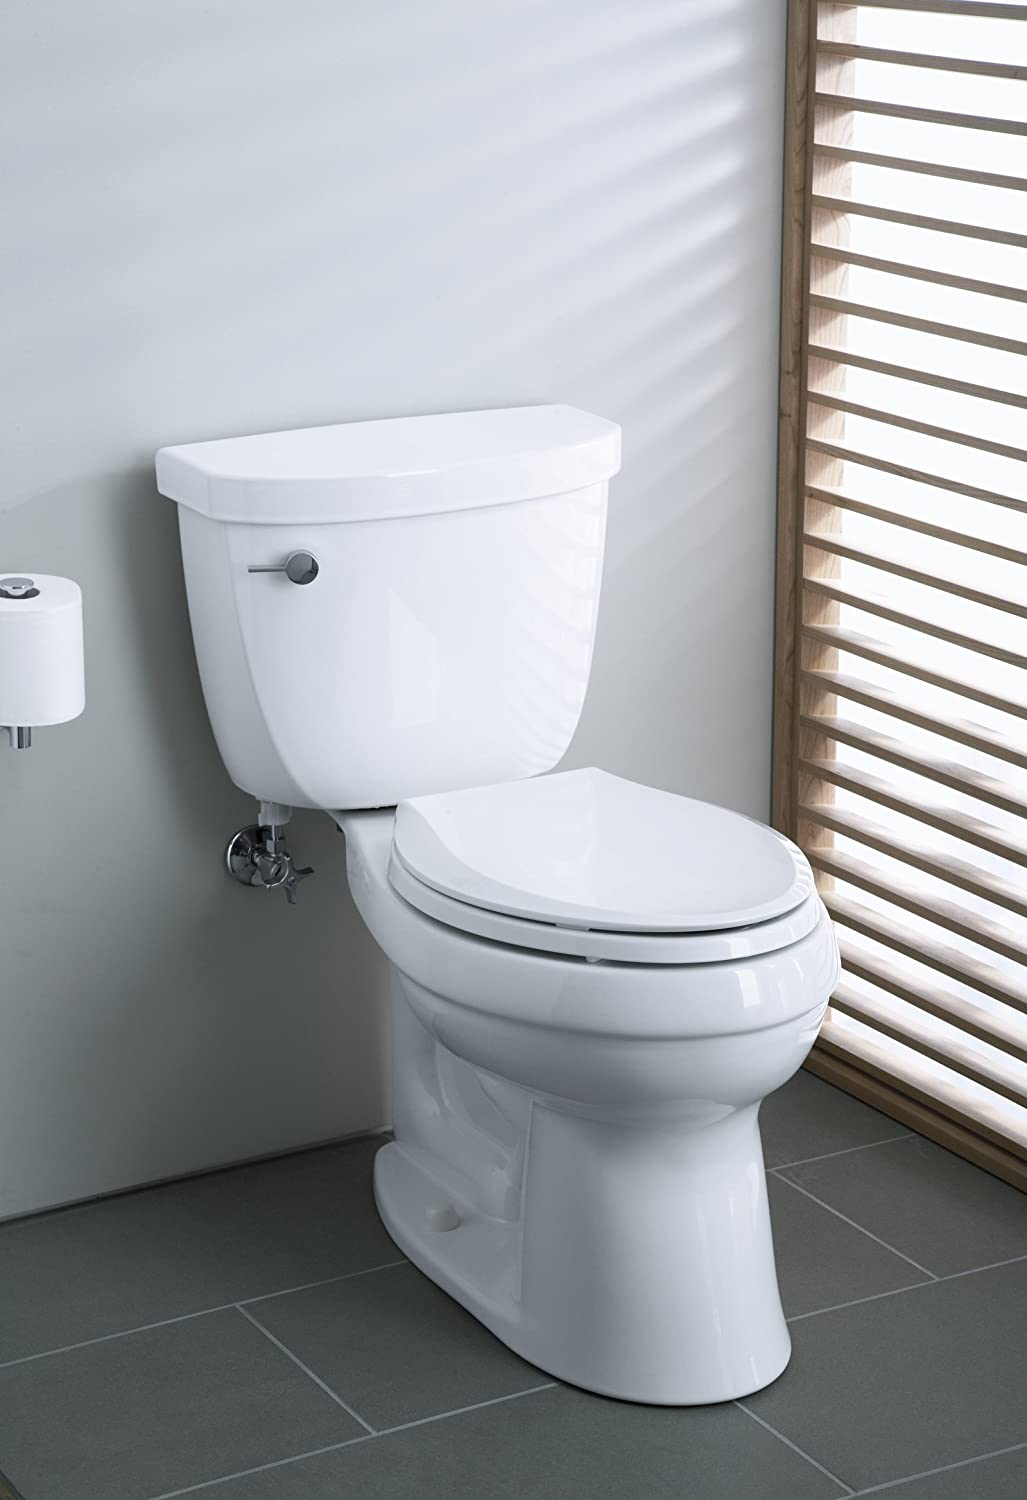 Amazon.com: KOHLER K-3609-0 Cimarron Comfort Height Elongated 1.28 ...